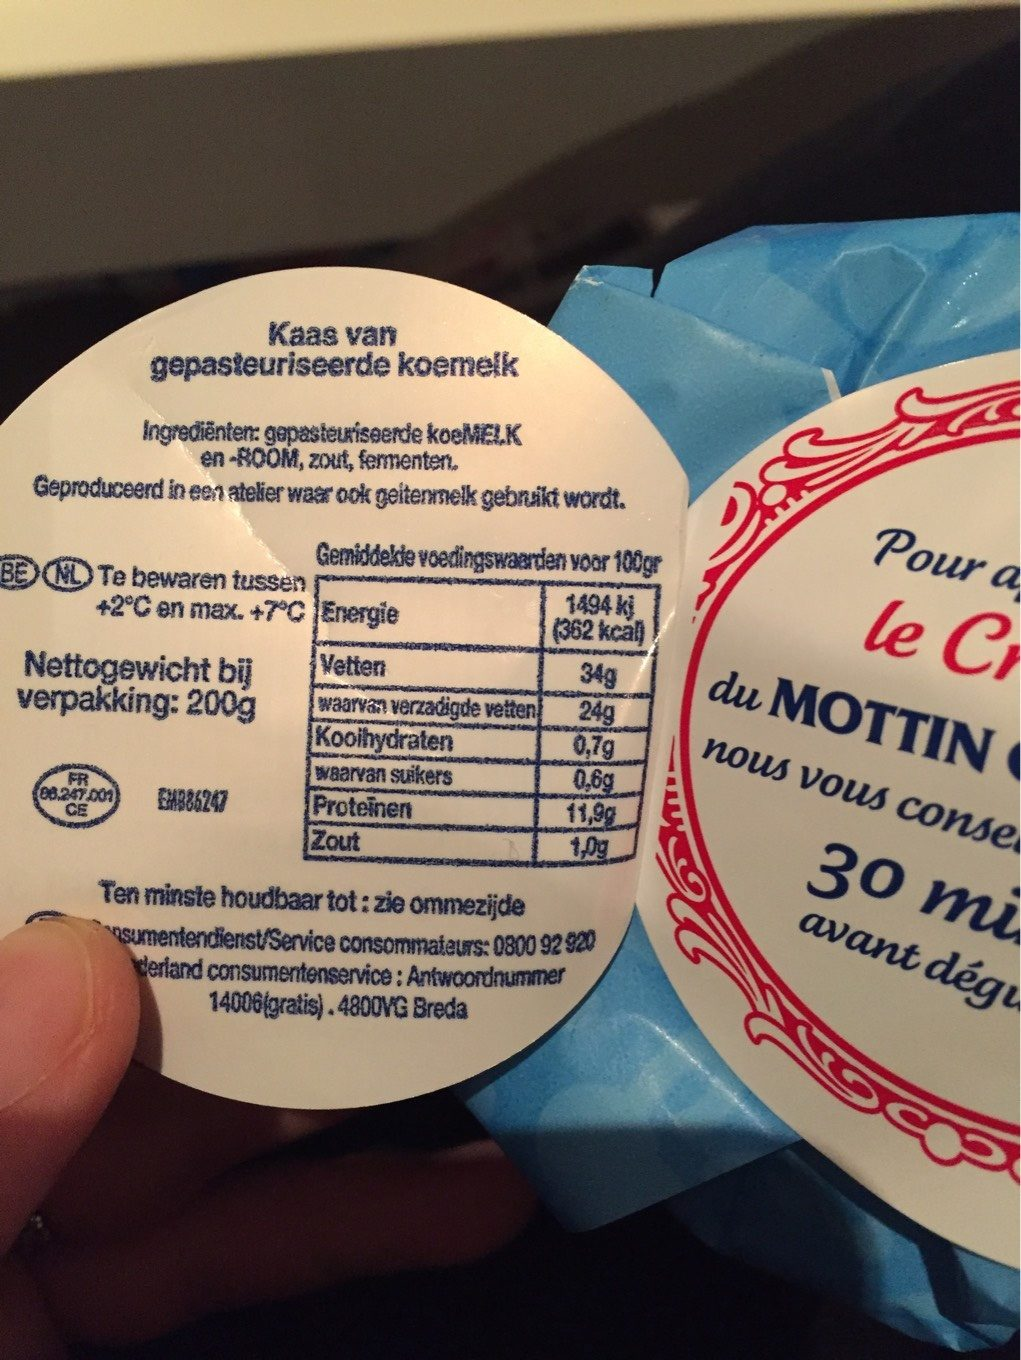 Le Mottin Charentais - Nutrition facts